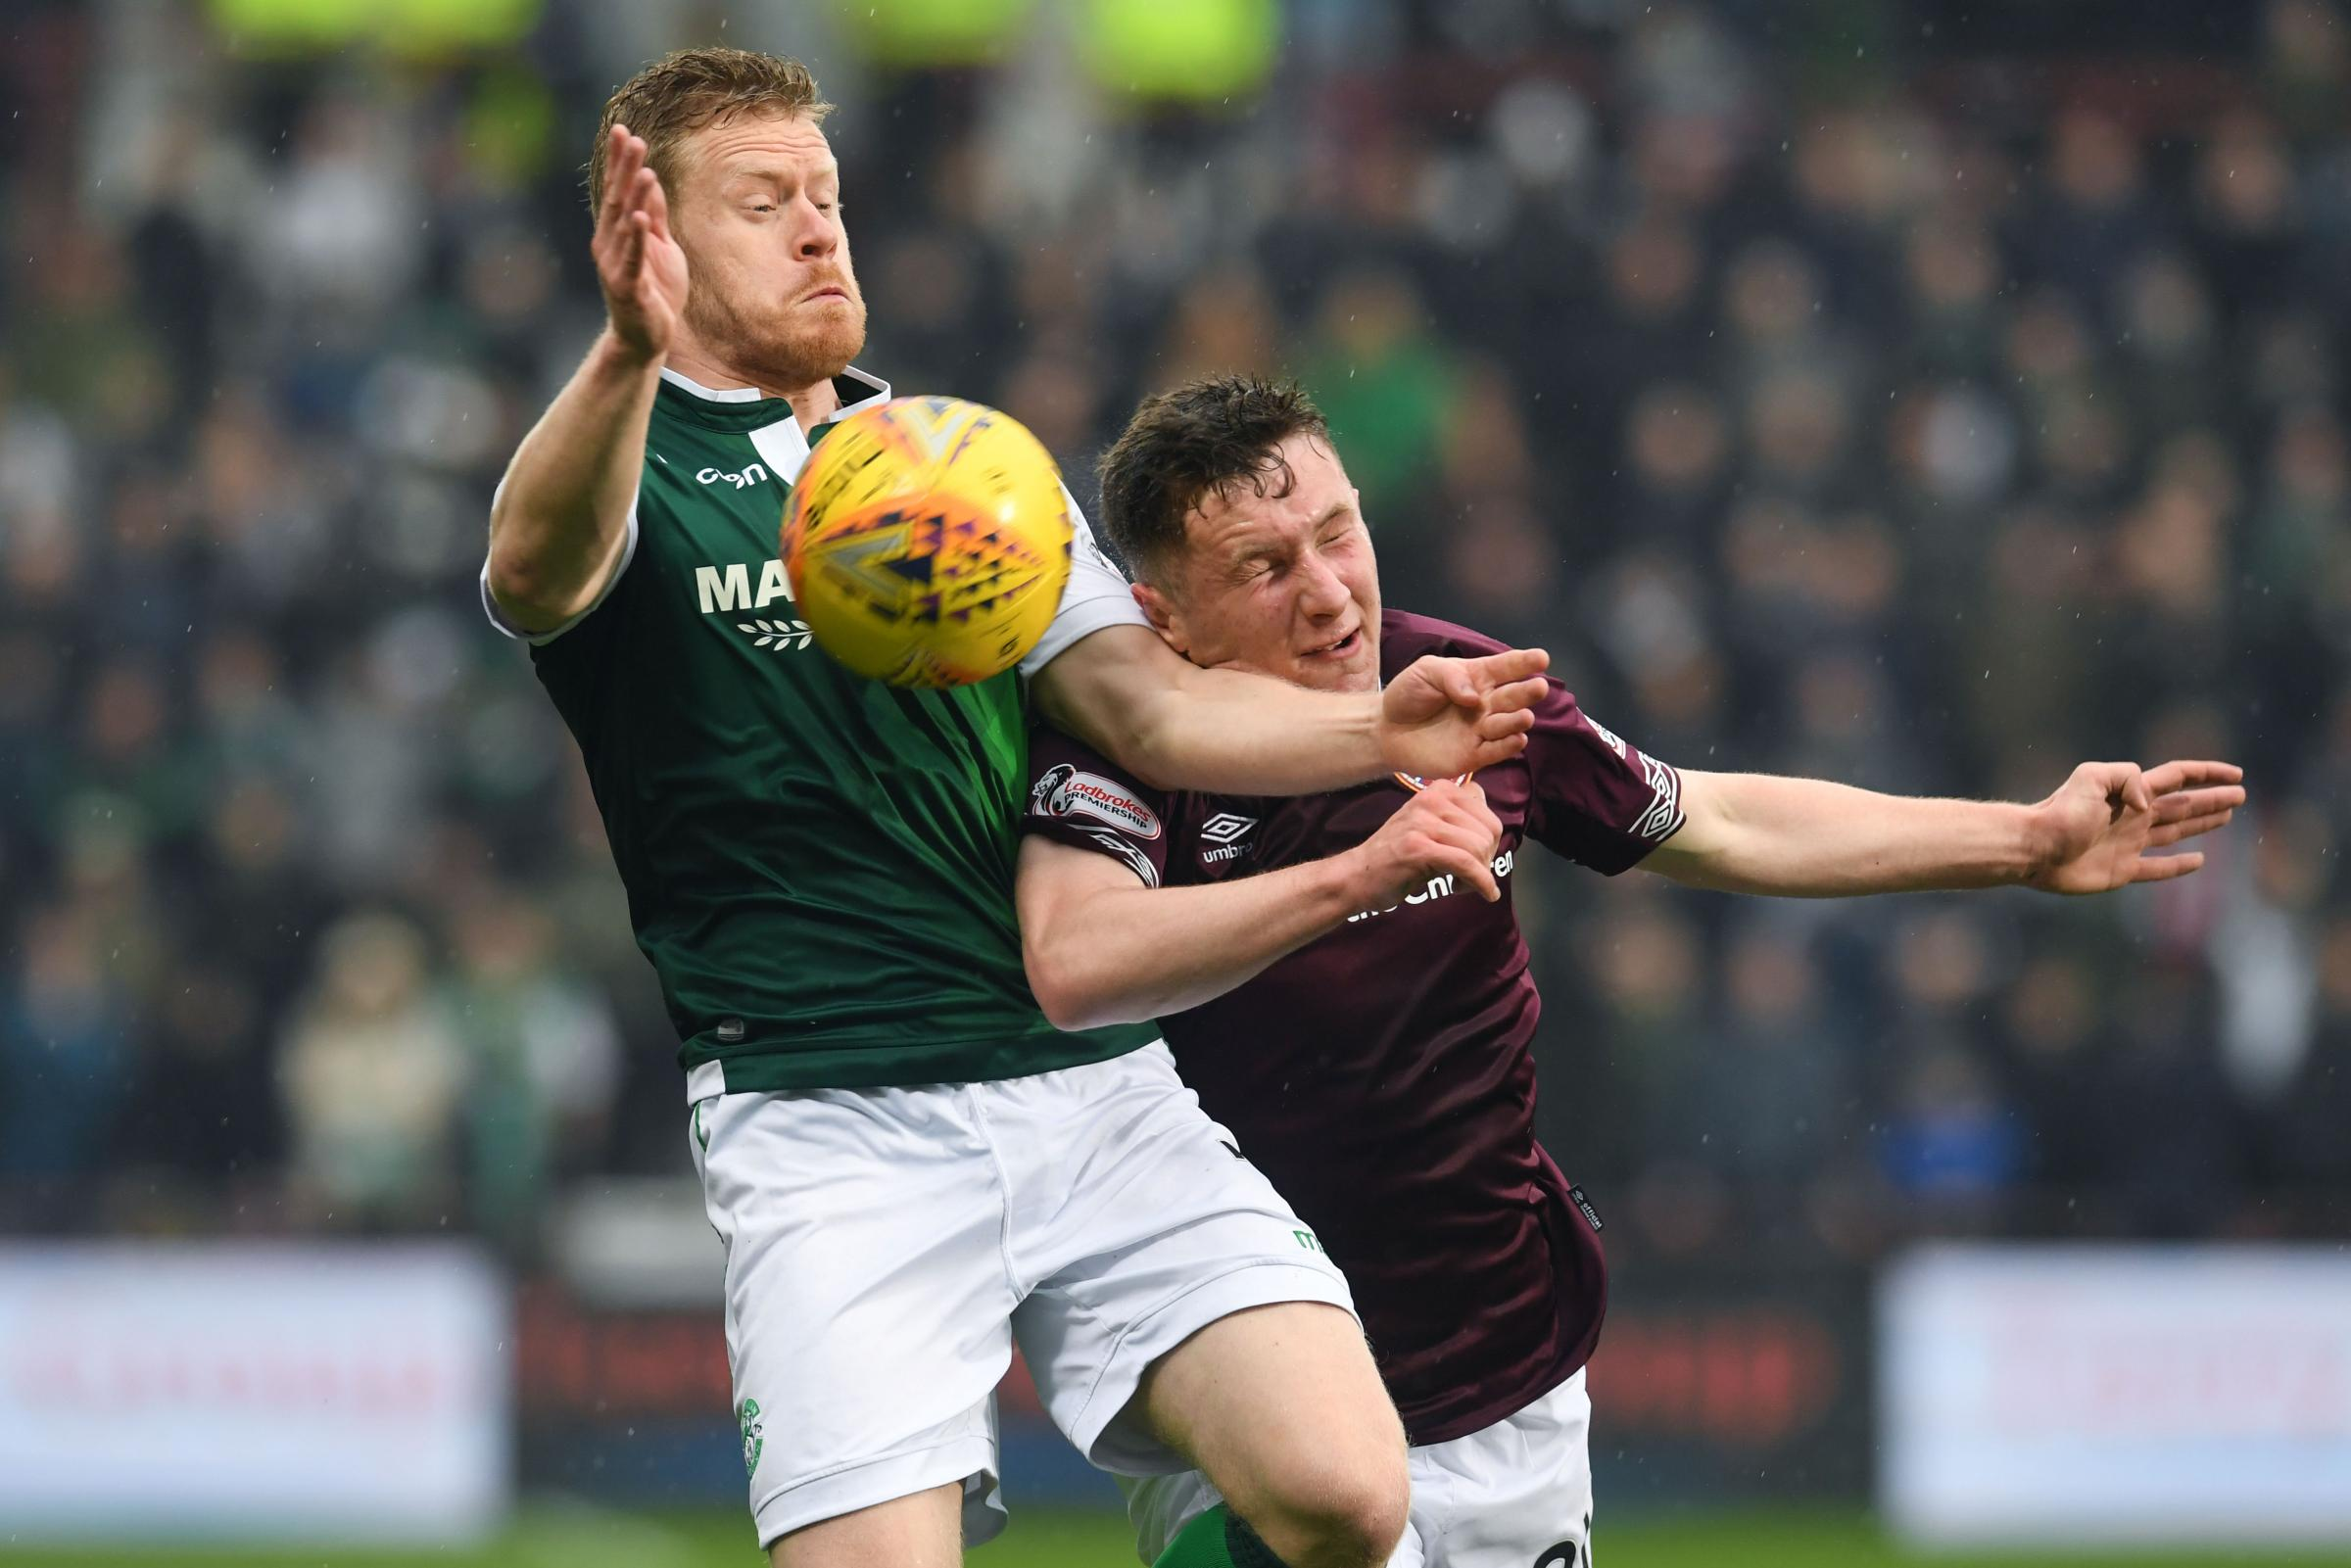 Ropey defences and misfiring forwards - what we can expect from the Edinburgh Derby